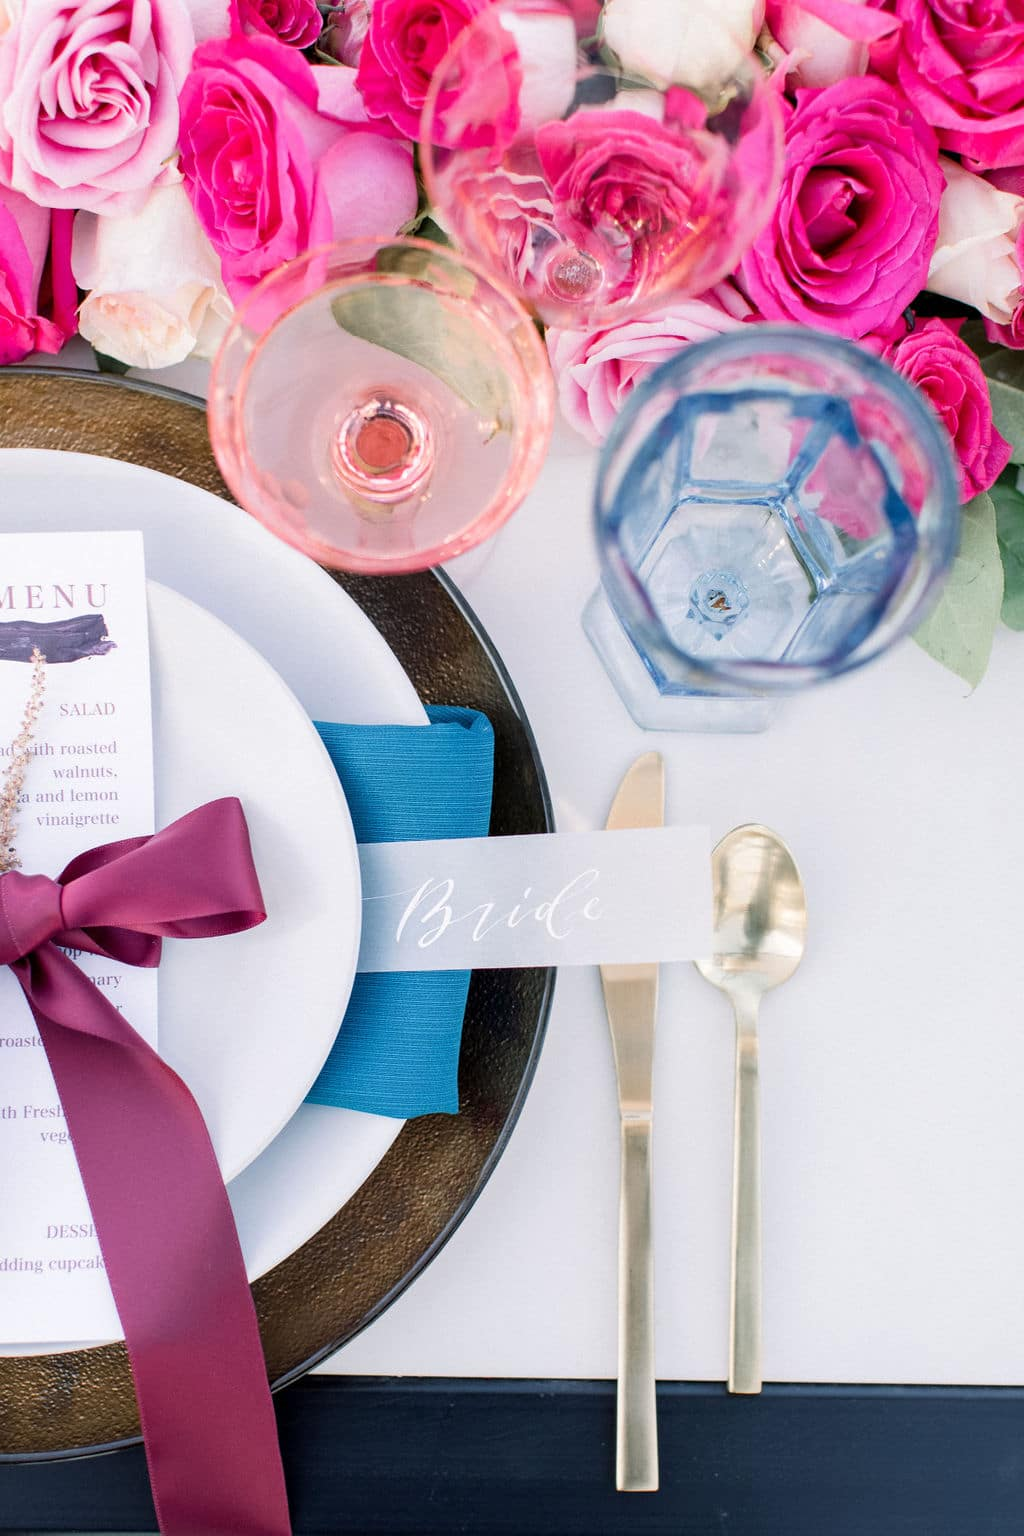 blue glass with blue and purple table setting with custom name tag that says bride